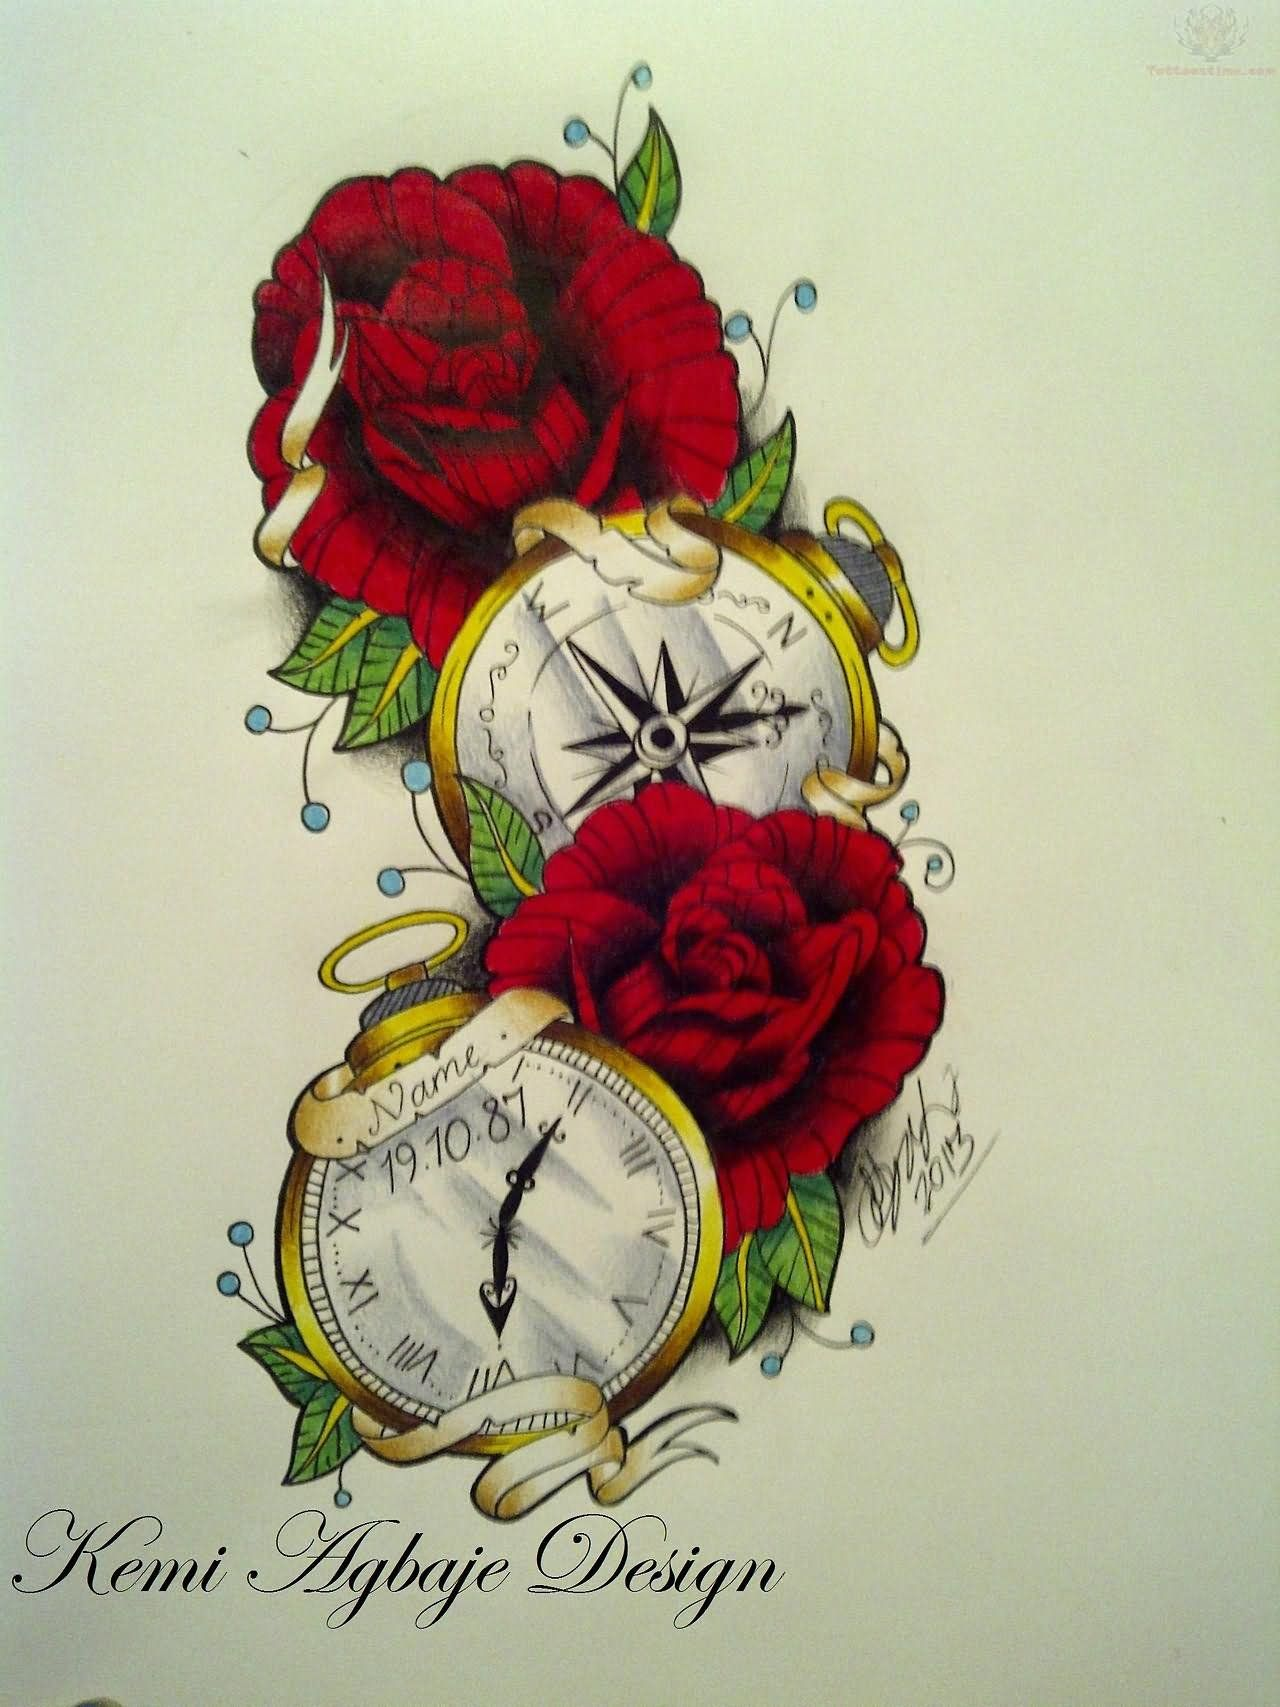 Red Roses Tattoo Design Tattoo Gallery Rose Tattoos Red Rose Tattoo Watch Tattoo Design